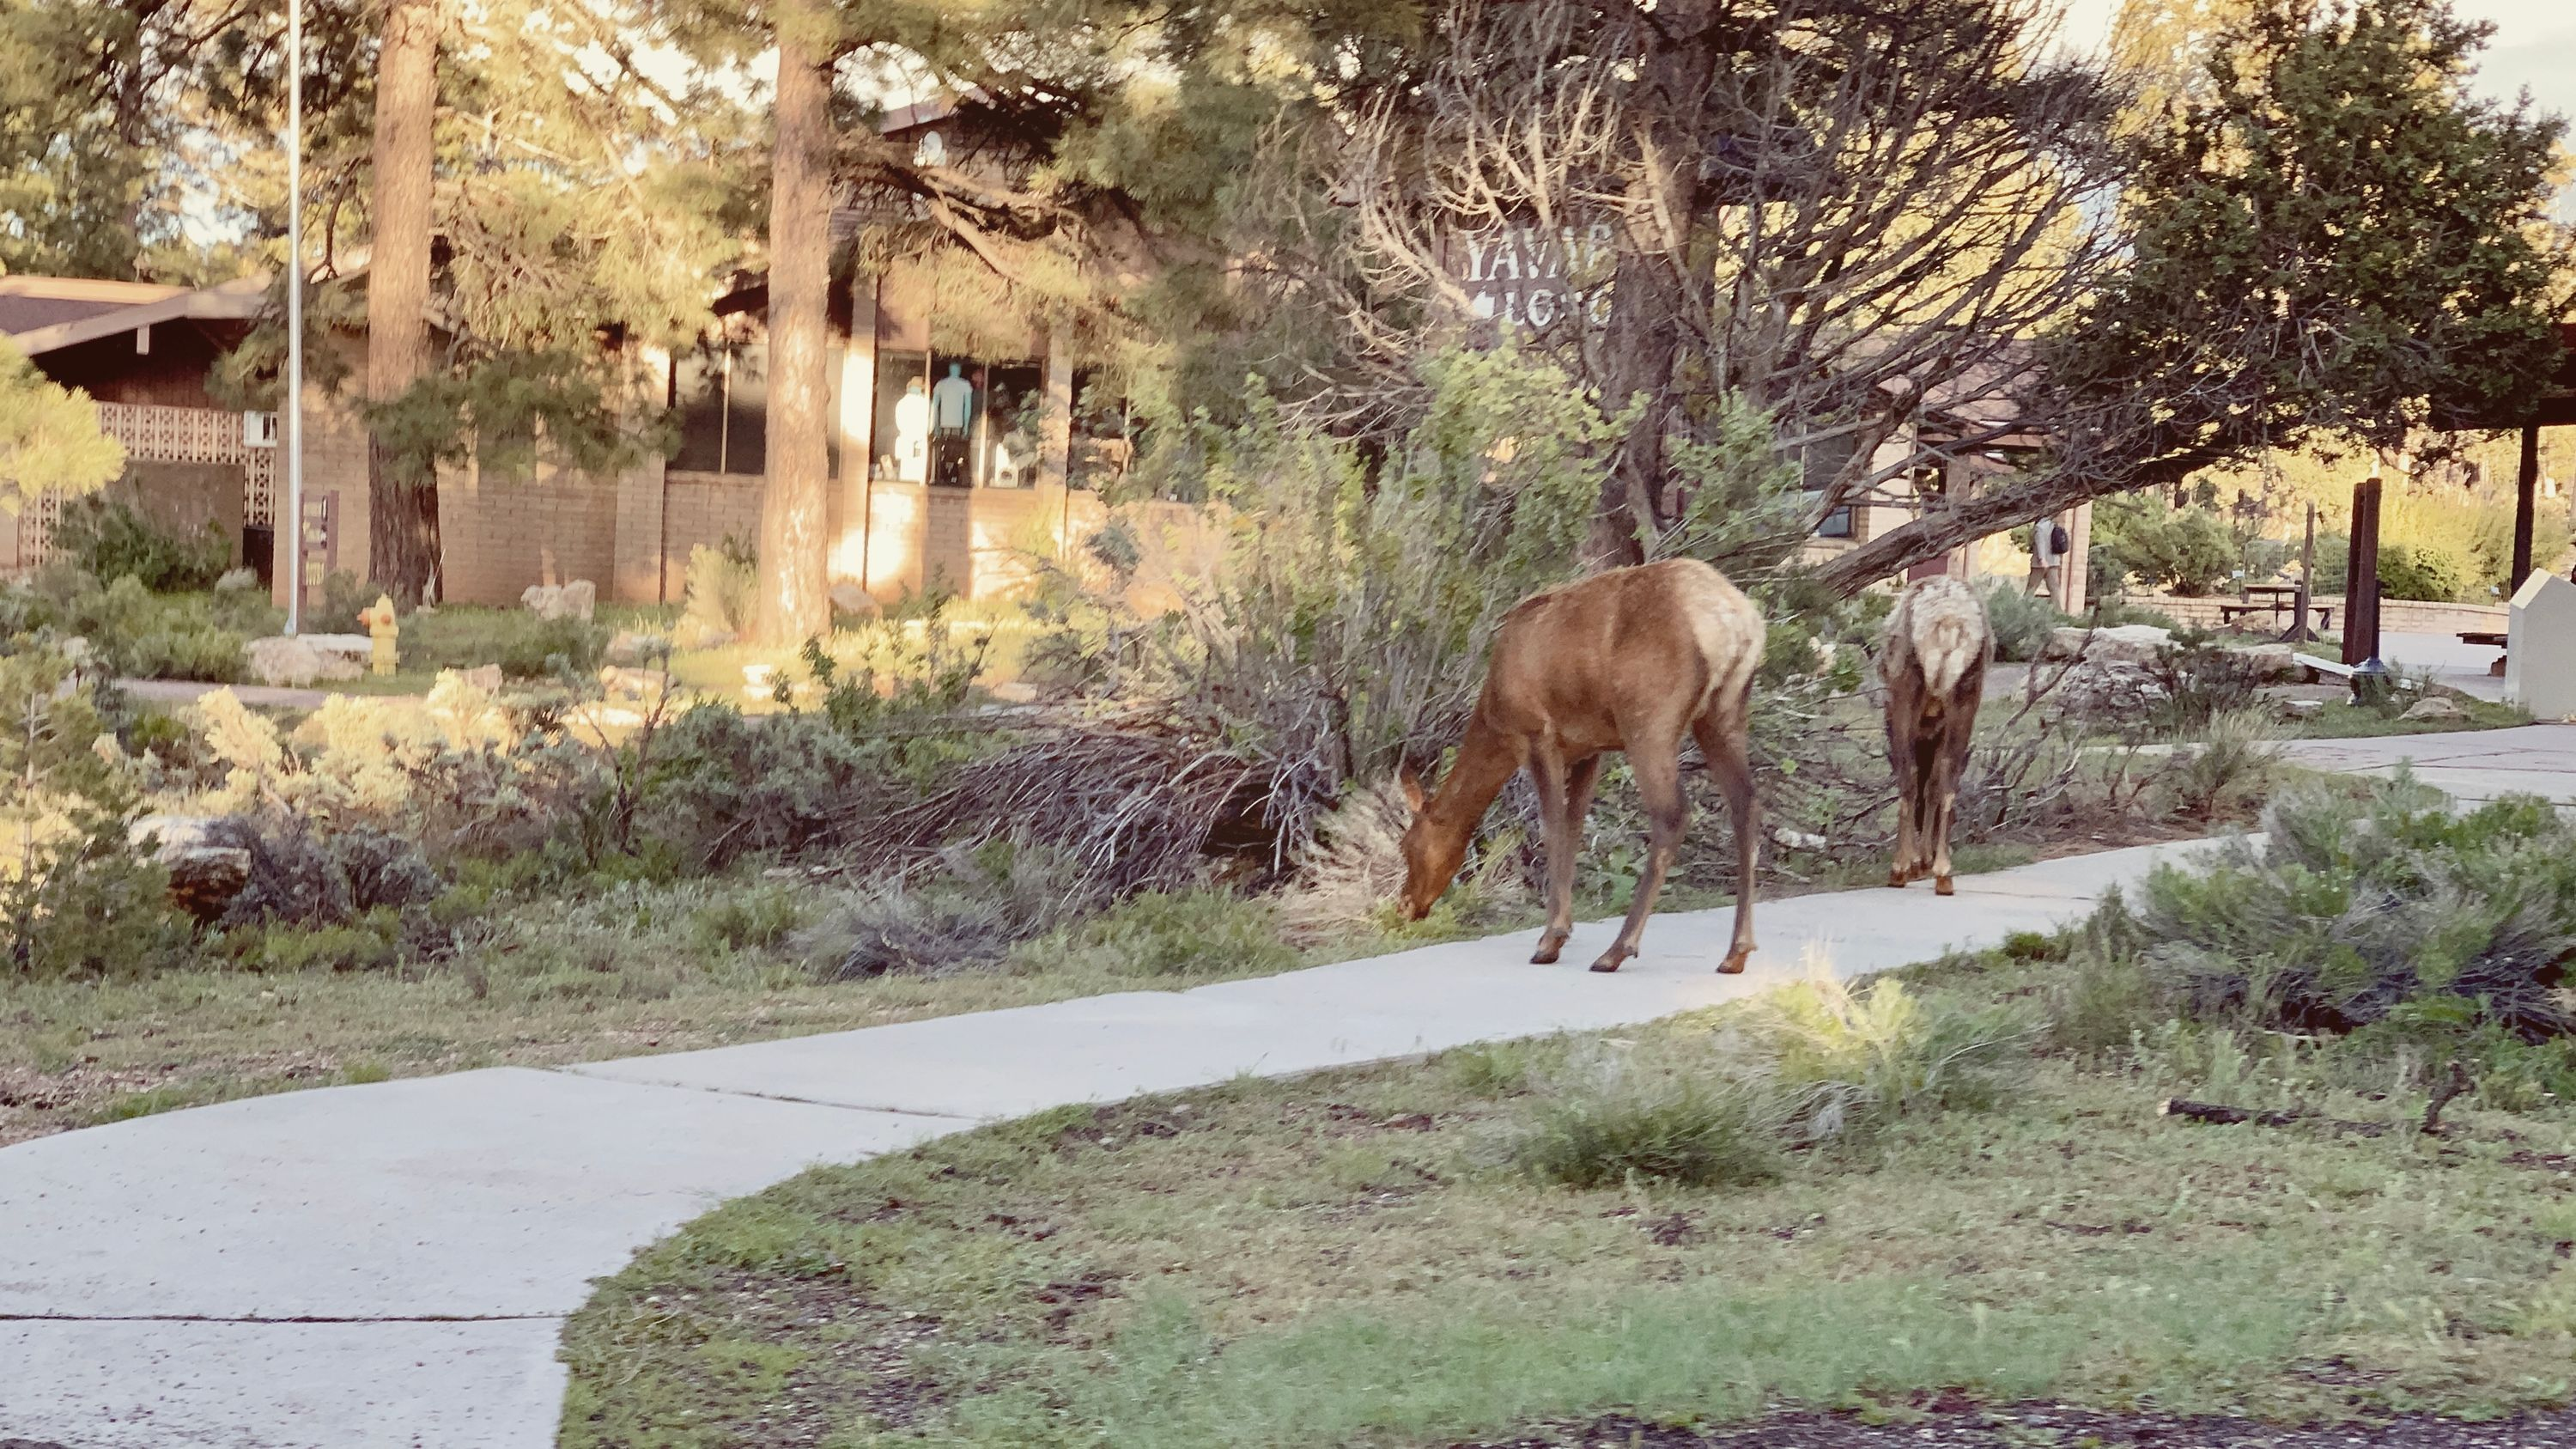 Random Elk grazing near a Grand Canyon Visitor's Center